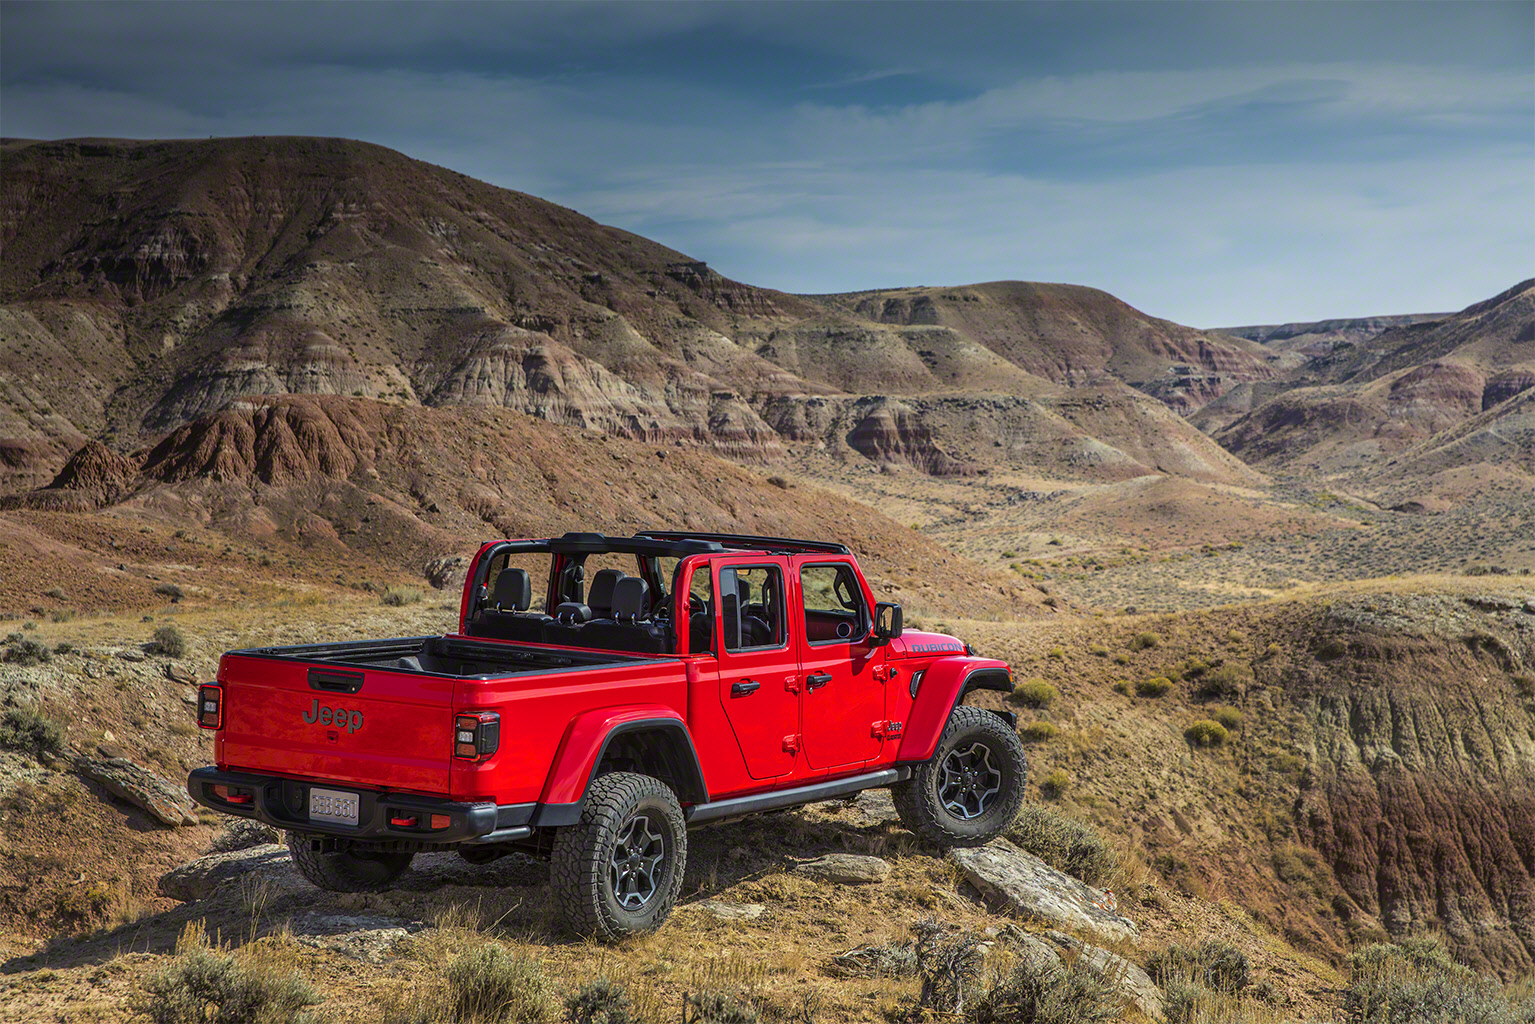 2020 Jeep Gladiator rear 3/4 mountains